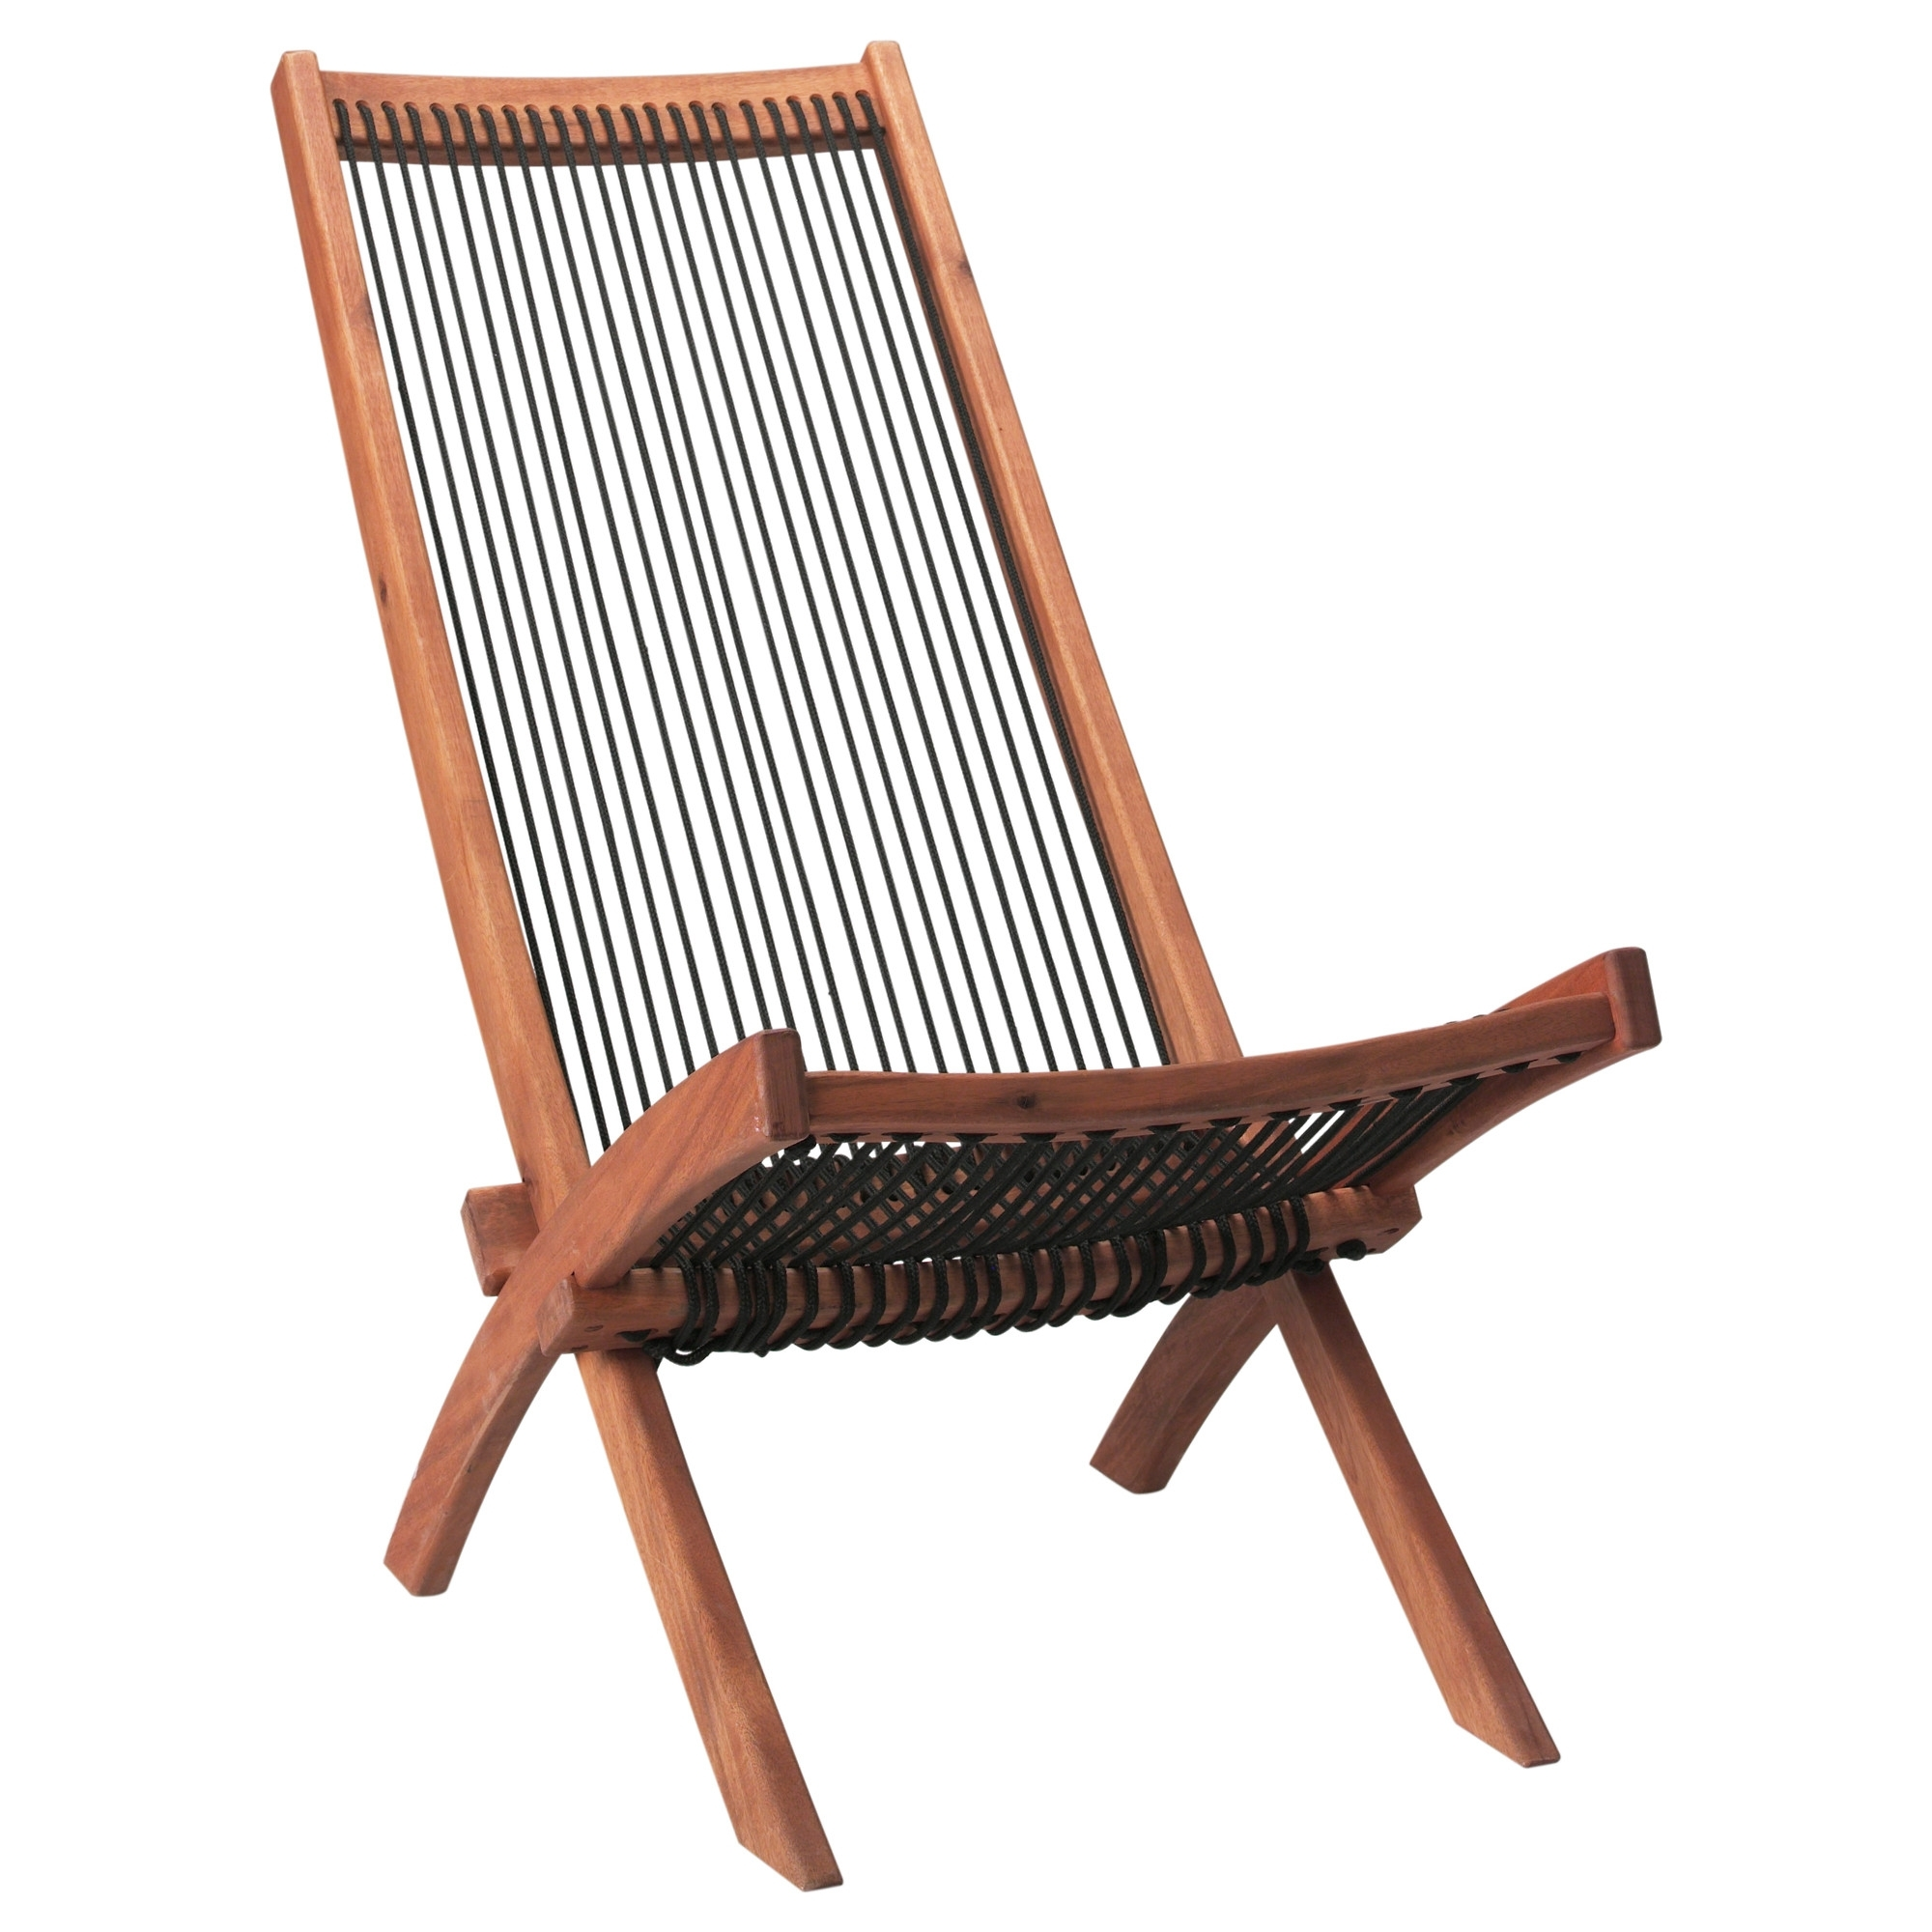 Outdoor Ikea Chaise Lounge Chairs With Regard To Well Known Brommö Chaise, Outdoor – Ikea (View 11 of 15)